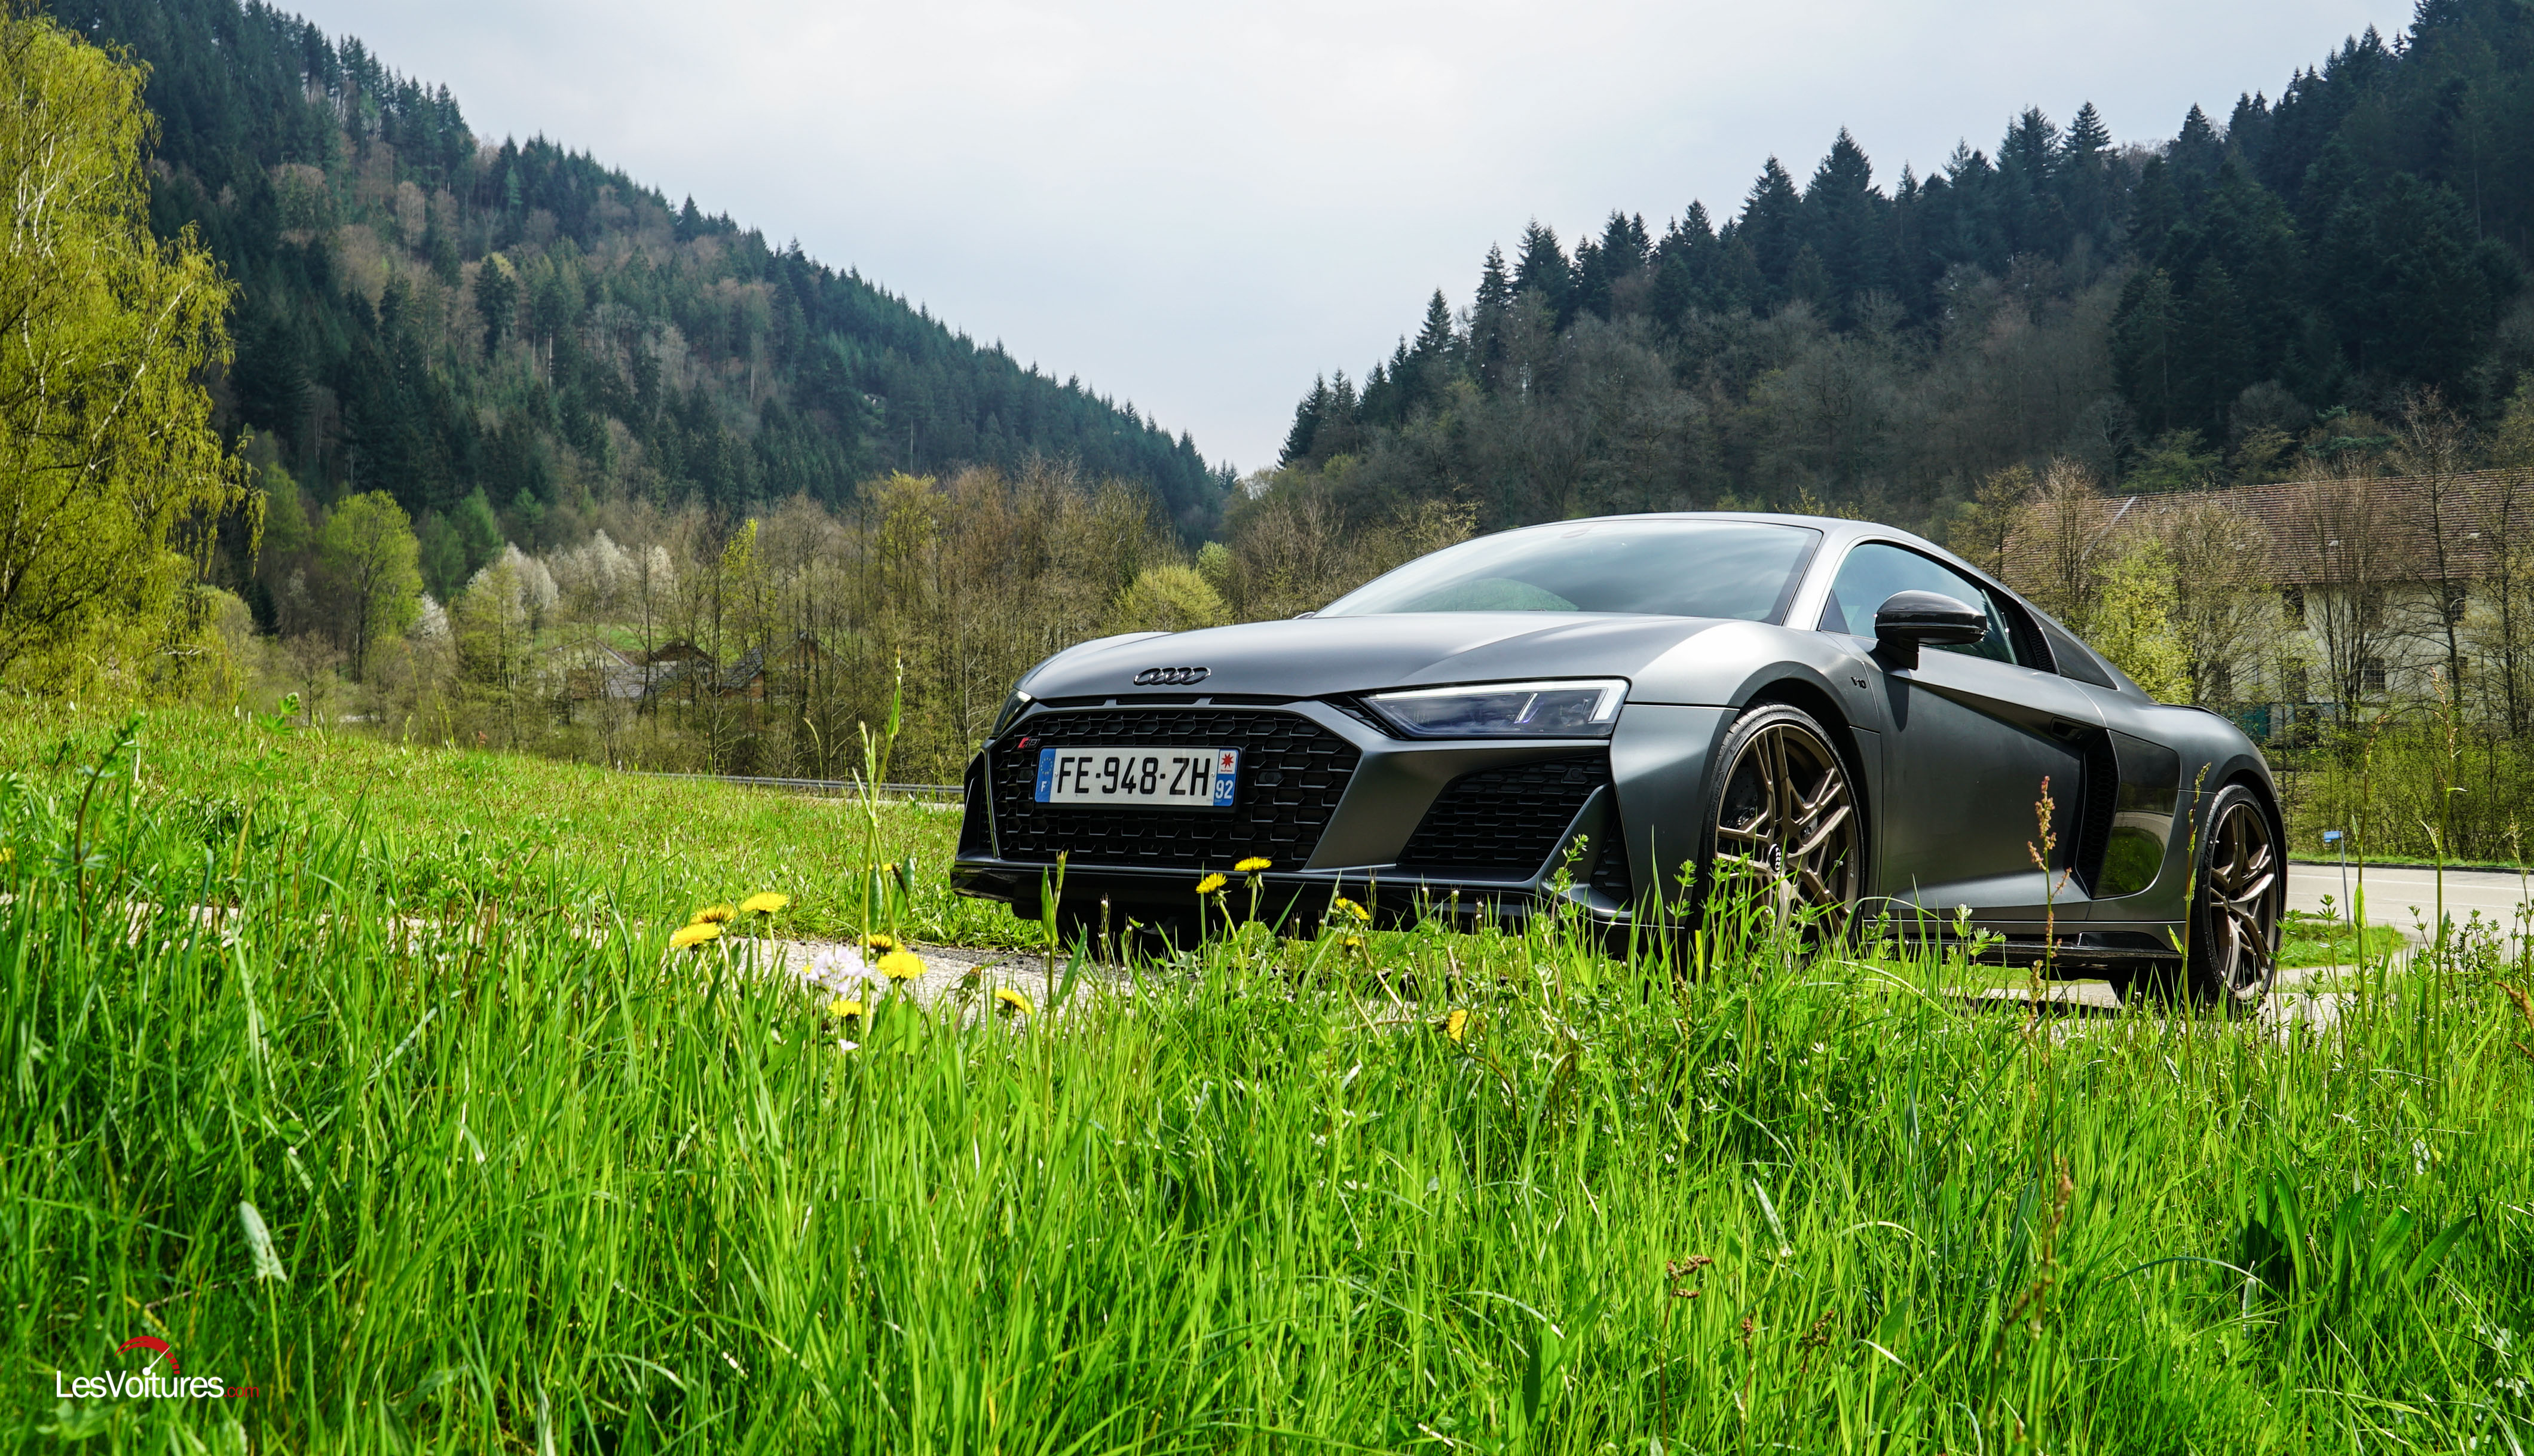 ArchivesLes Voitures R8 Audi R8 Audi ArchivesLes R8 Audi Voitures fgIb6vY7y